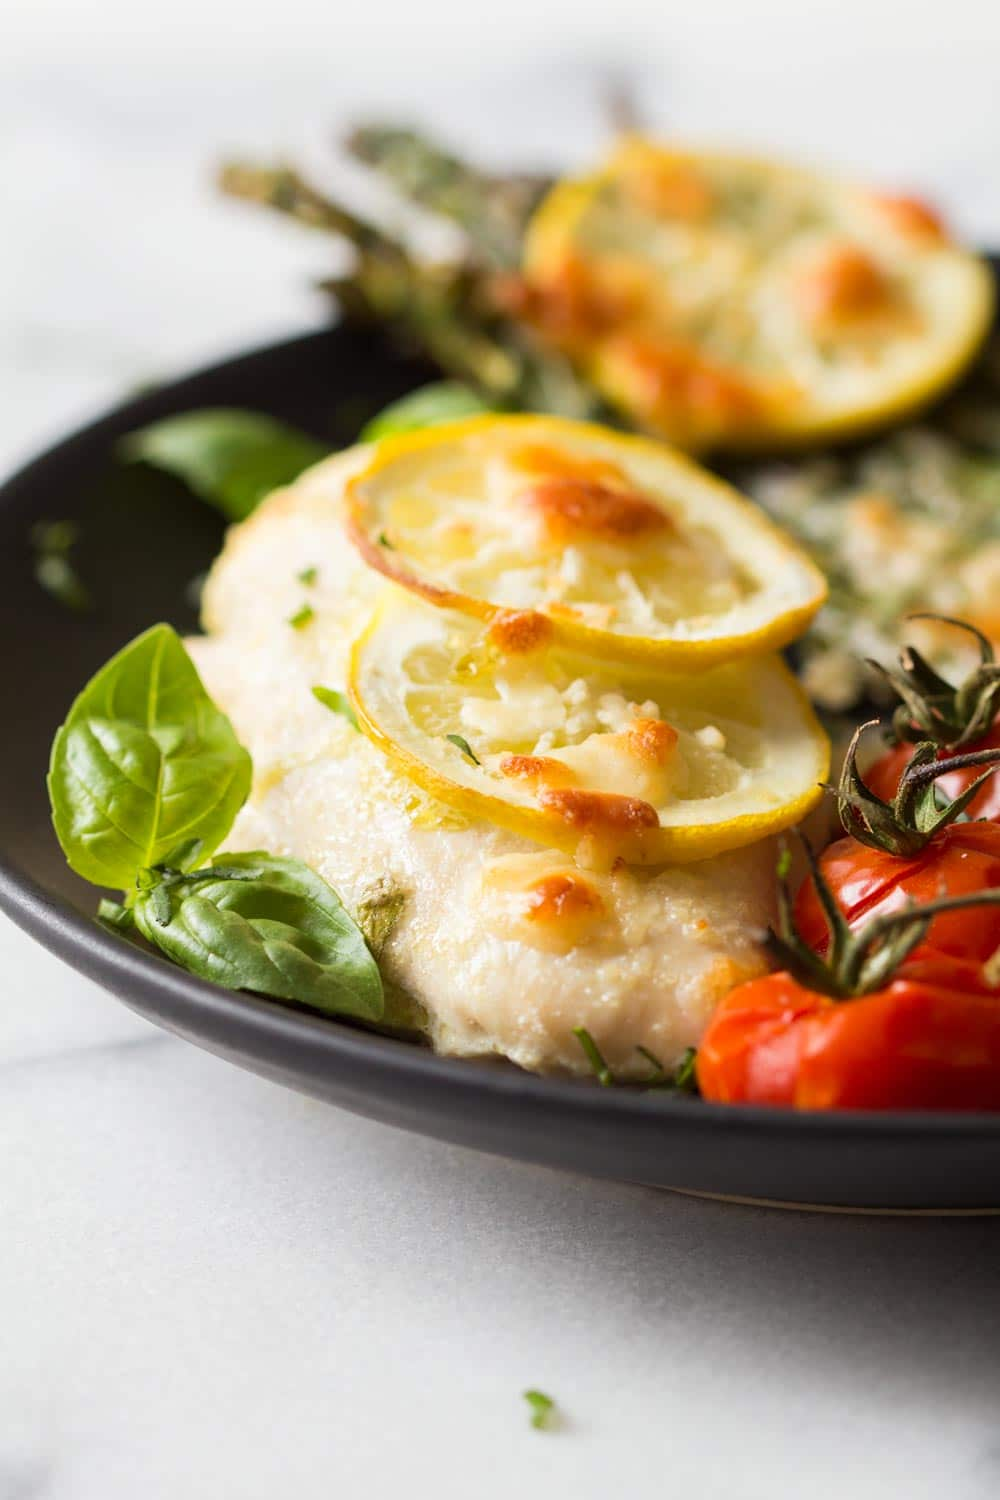 Detail of baked lemon chicken and asaparagus with cherry tomatoes, served on a black plate.